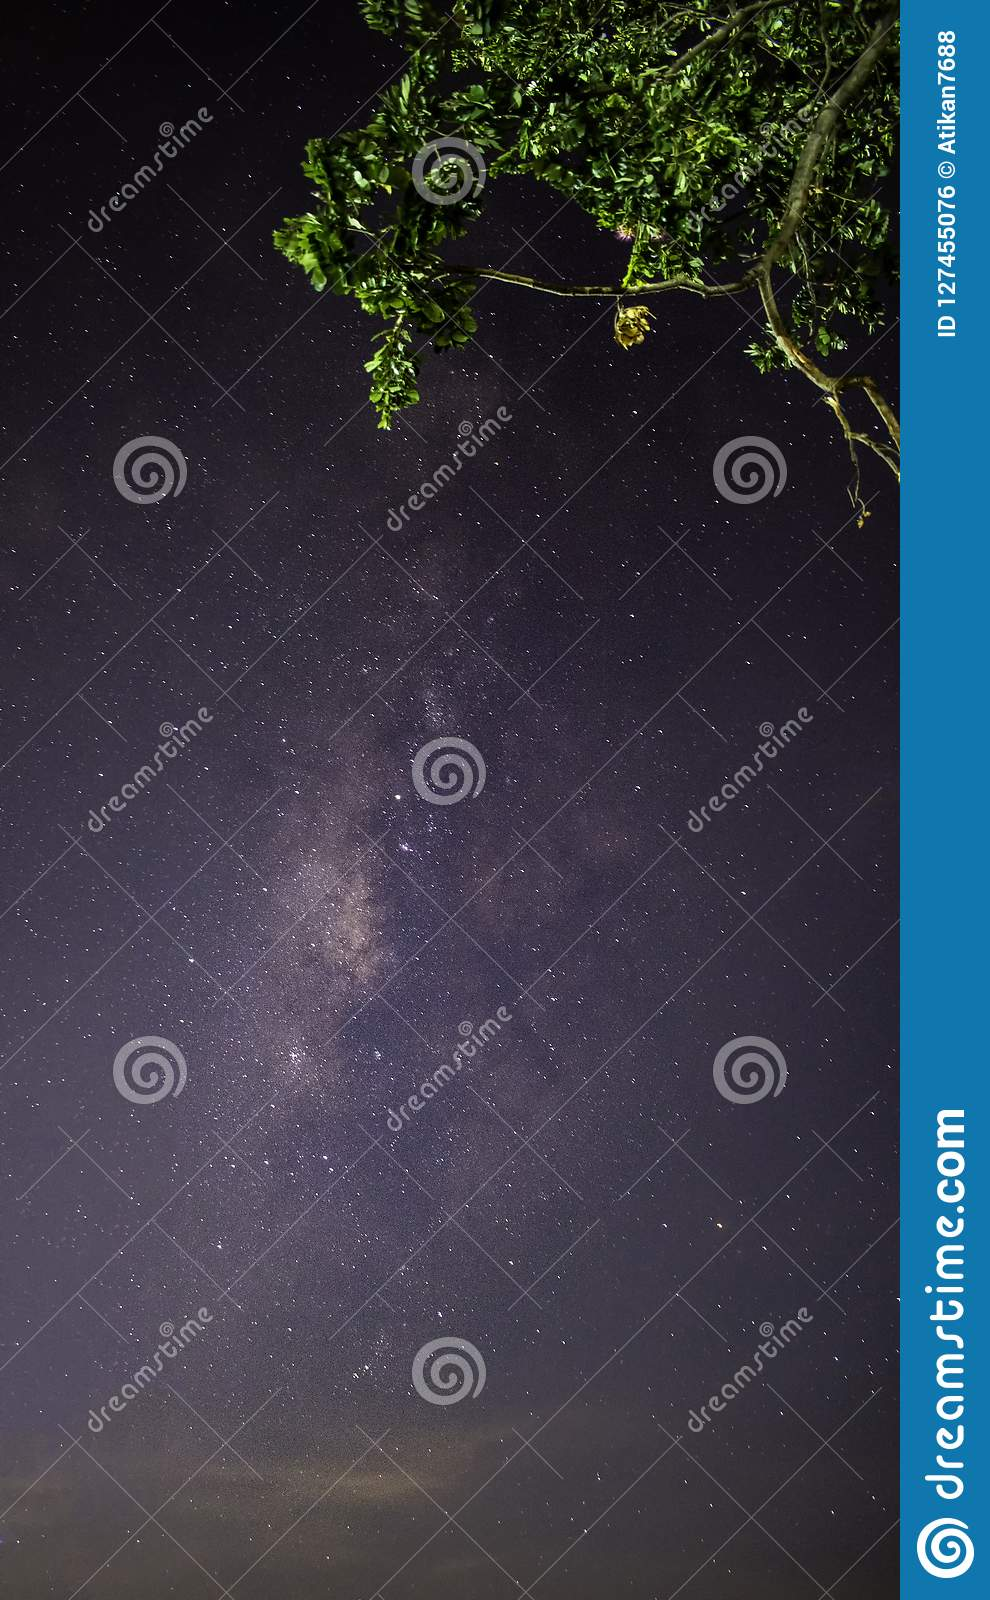 Milky way galaxy with stars and space dust in terraced rice field. (Visible noise due to high ISO, soft focus, shallow